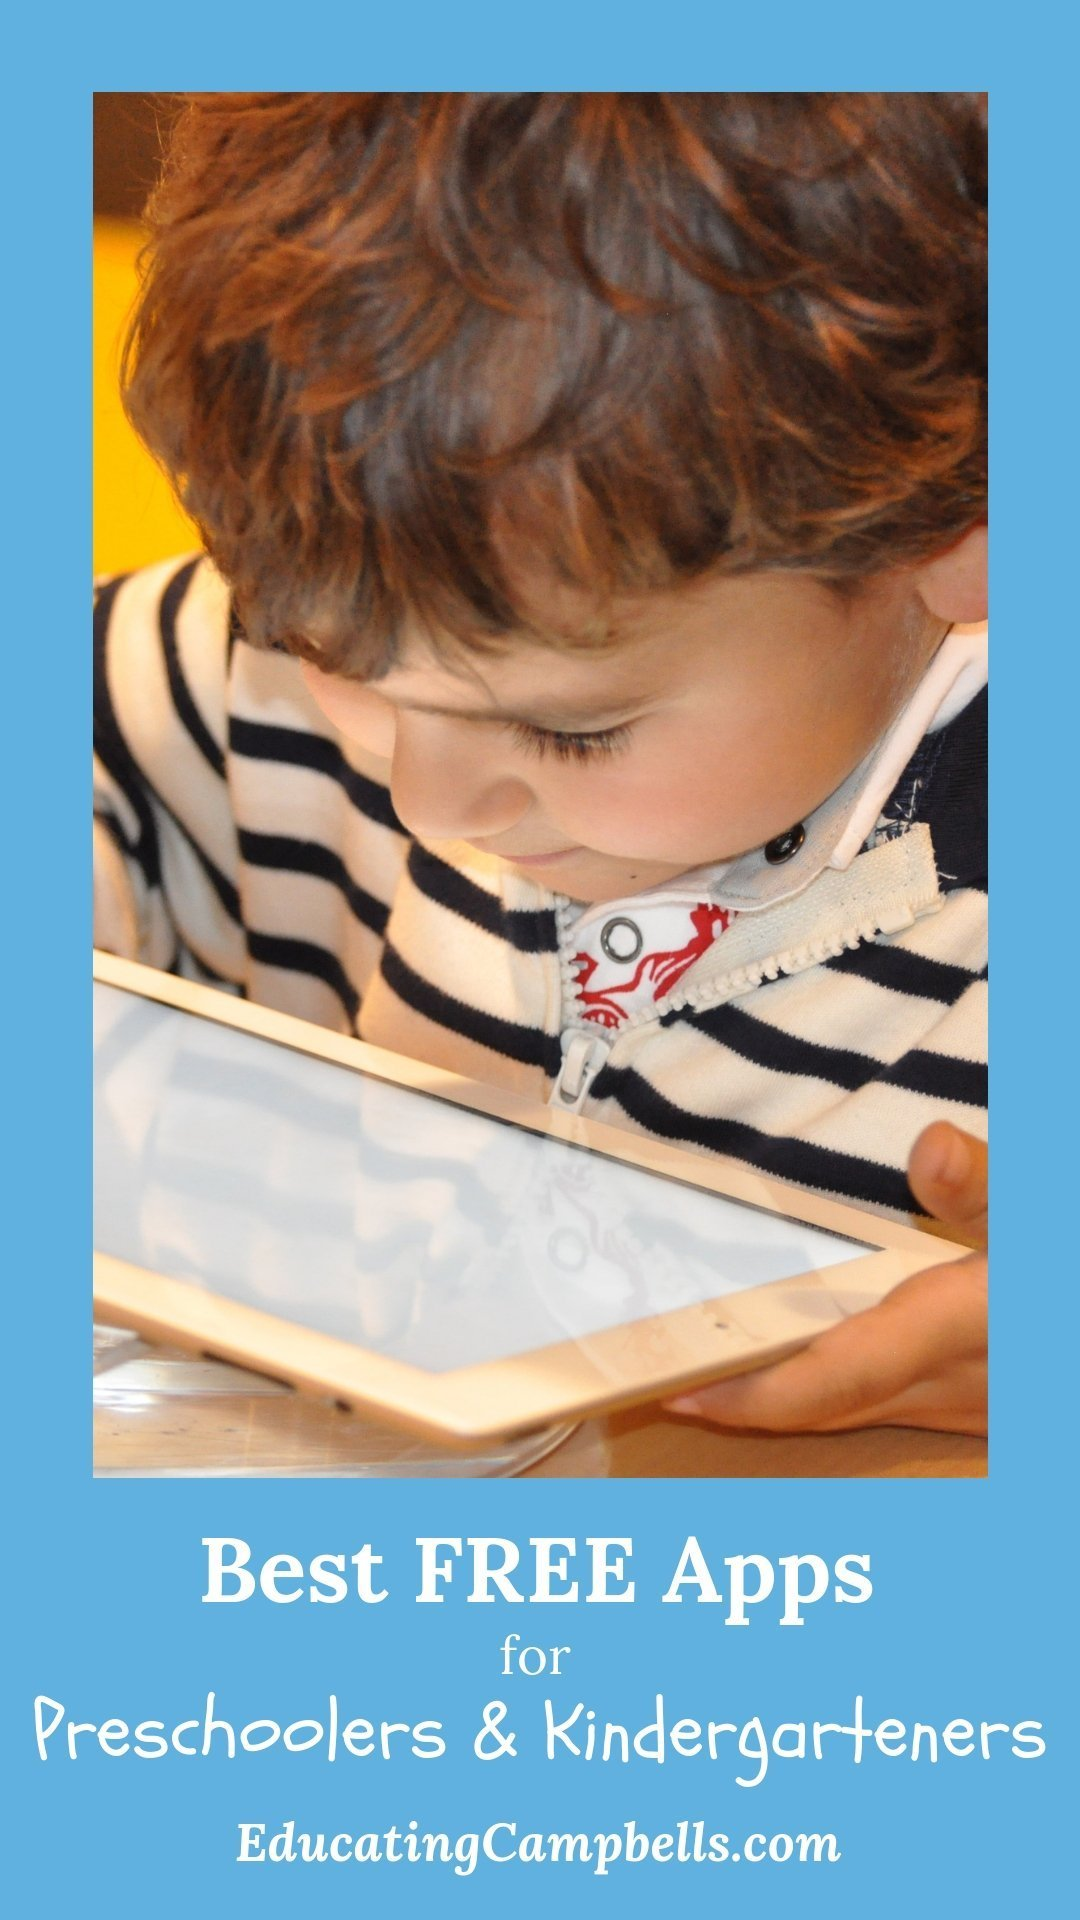 Best free apps for preschoolers and kindergarteners, child playing with tablet